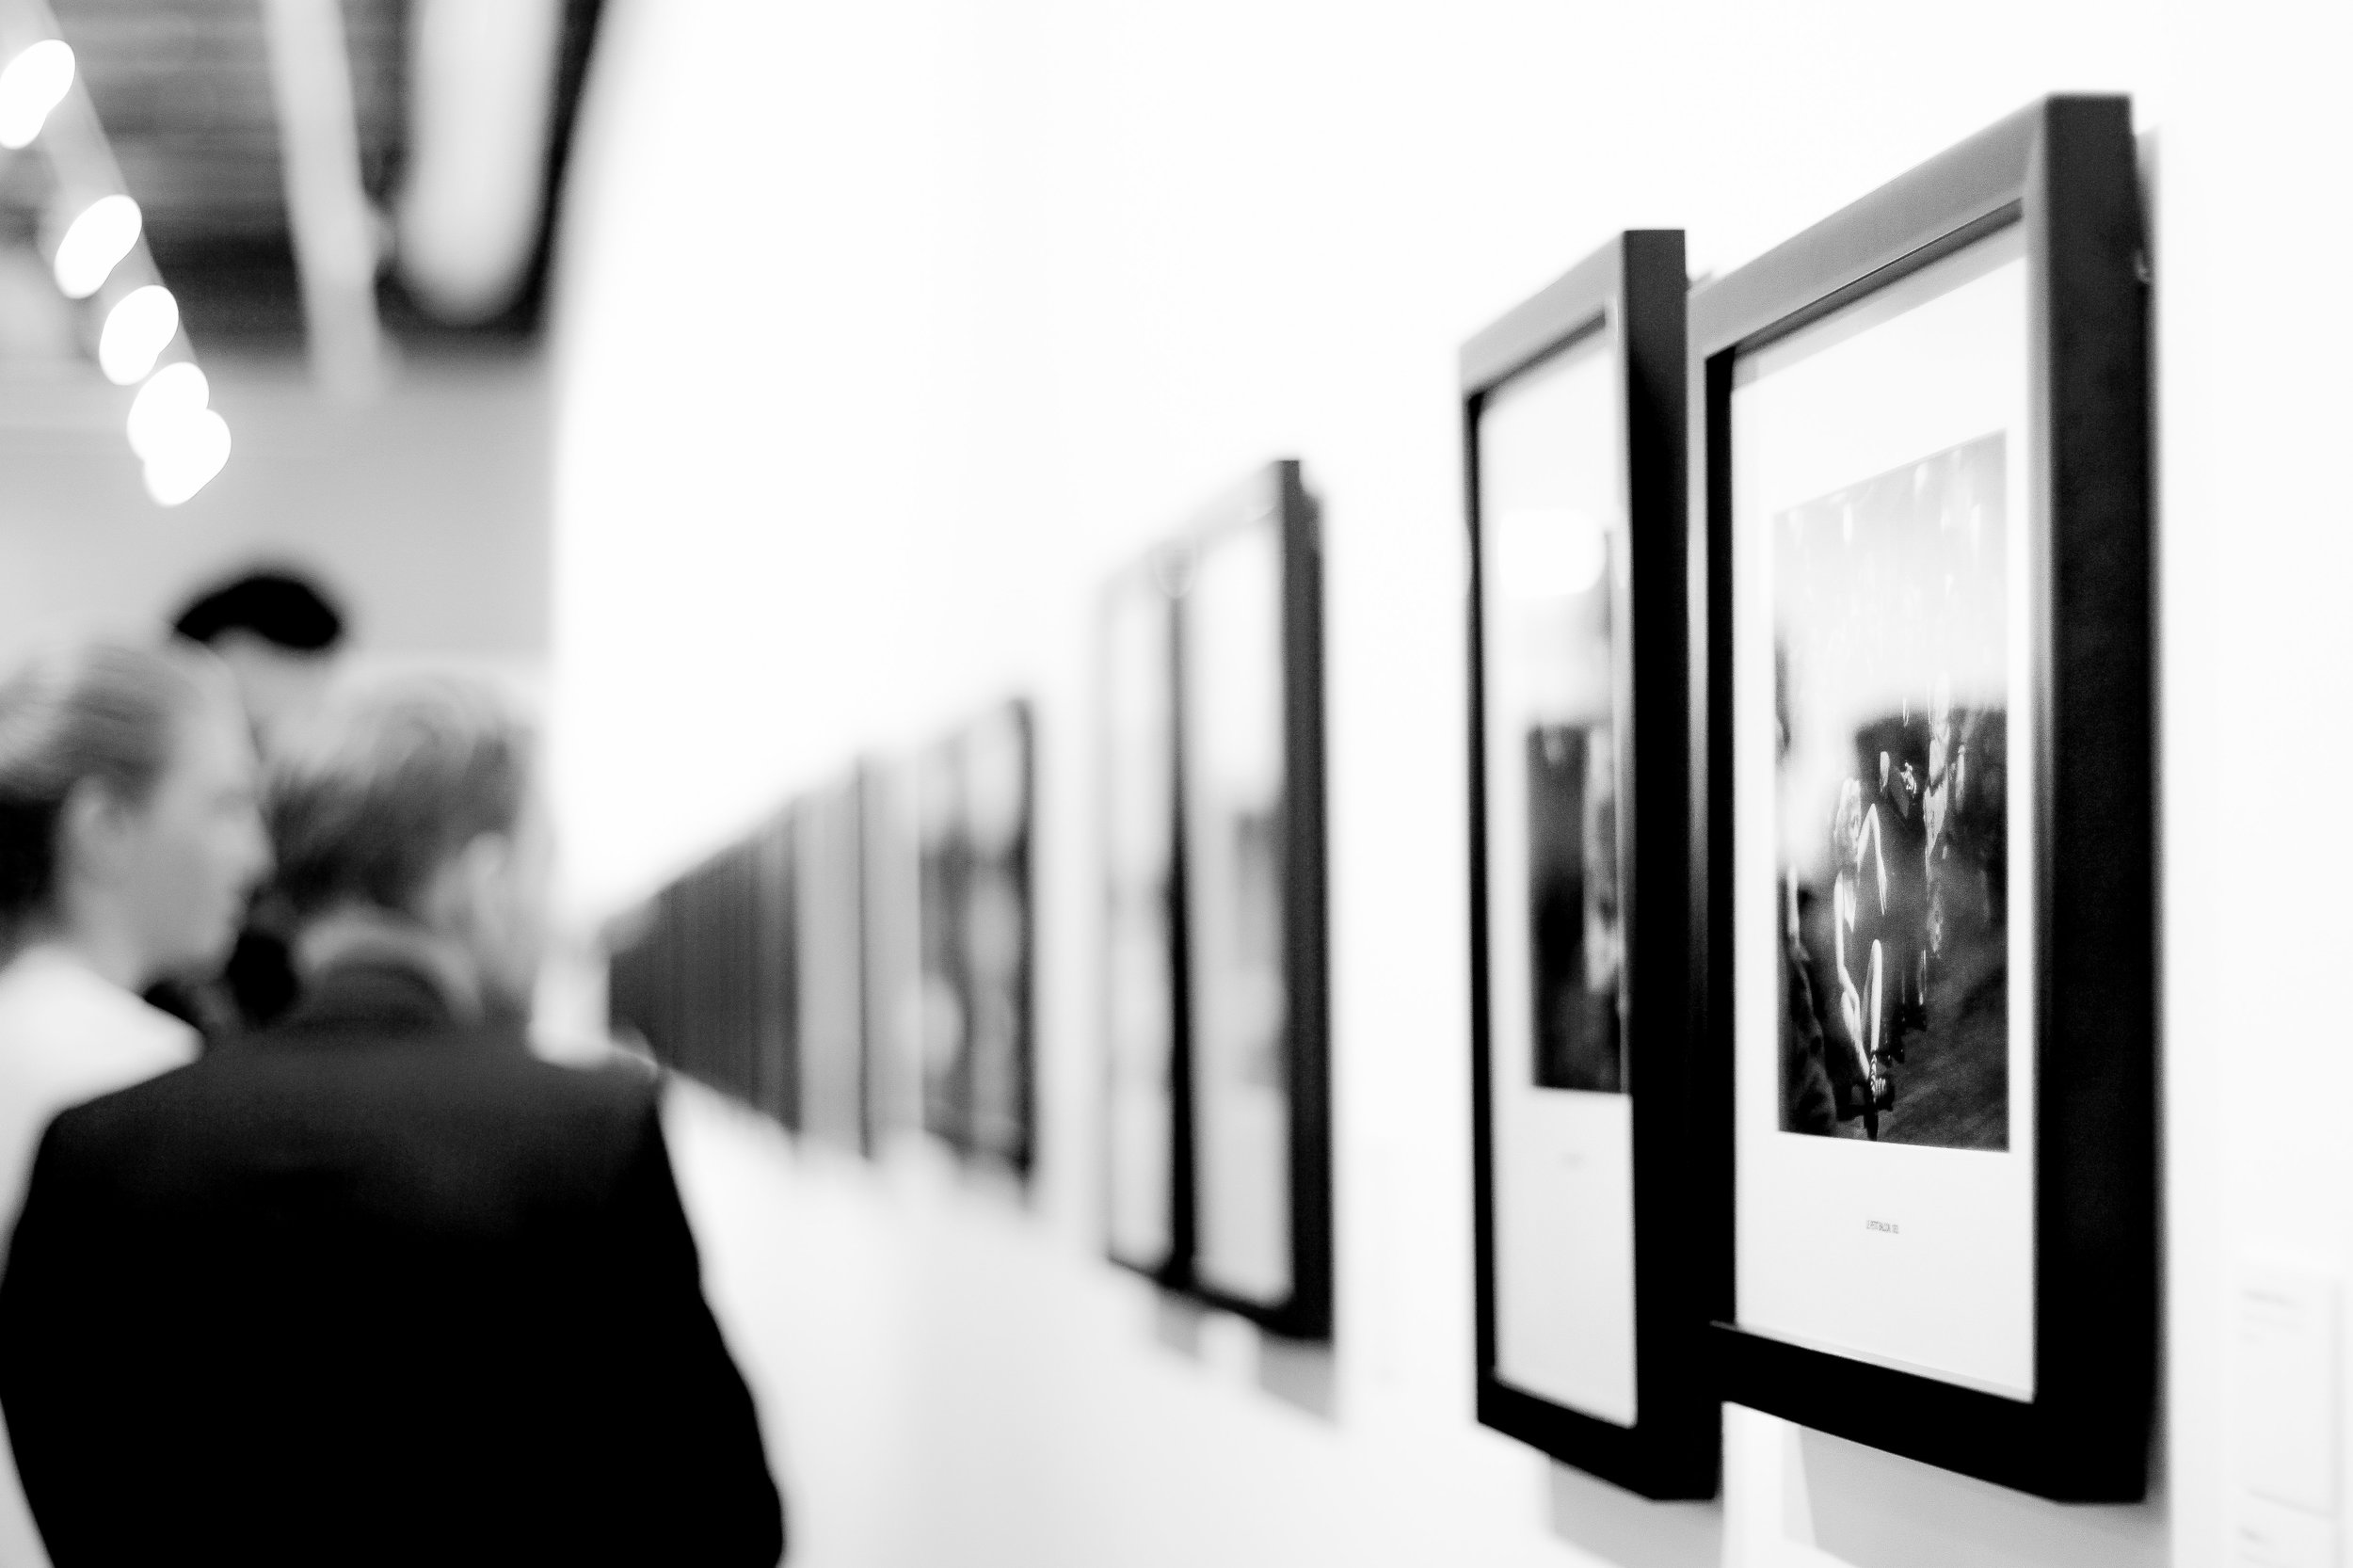 art-black-and-white-exhibition-21264.jpg